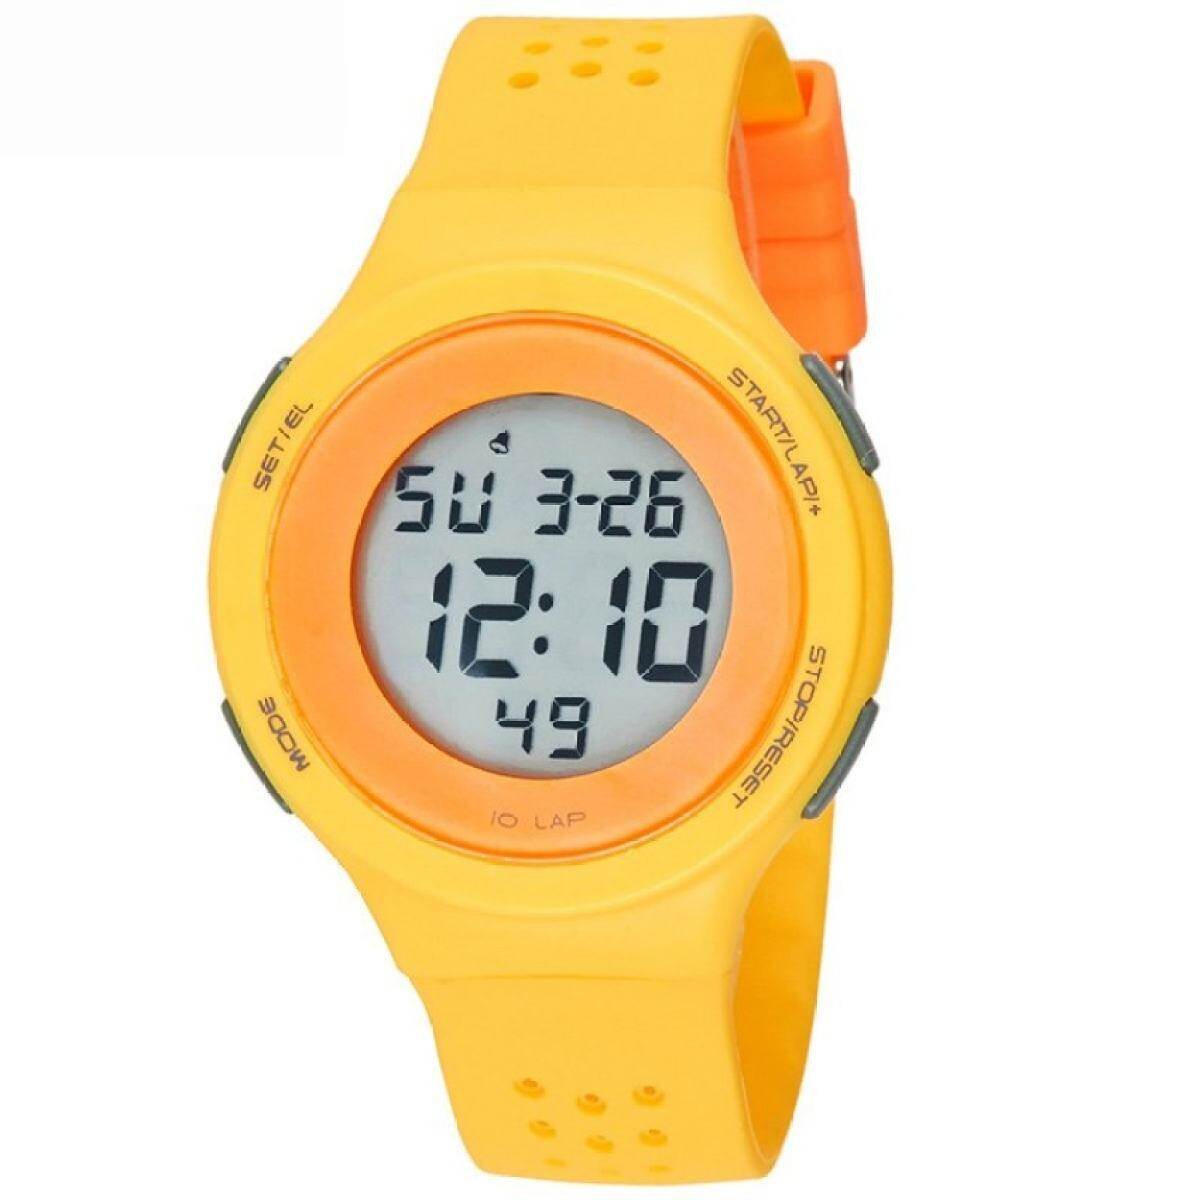 TwinkleStar Spor Wrist Watches Led Digital For Watch Boys And Girls67866-Yellow Malaysia